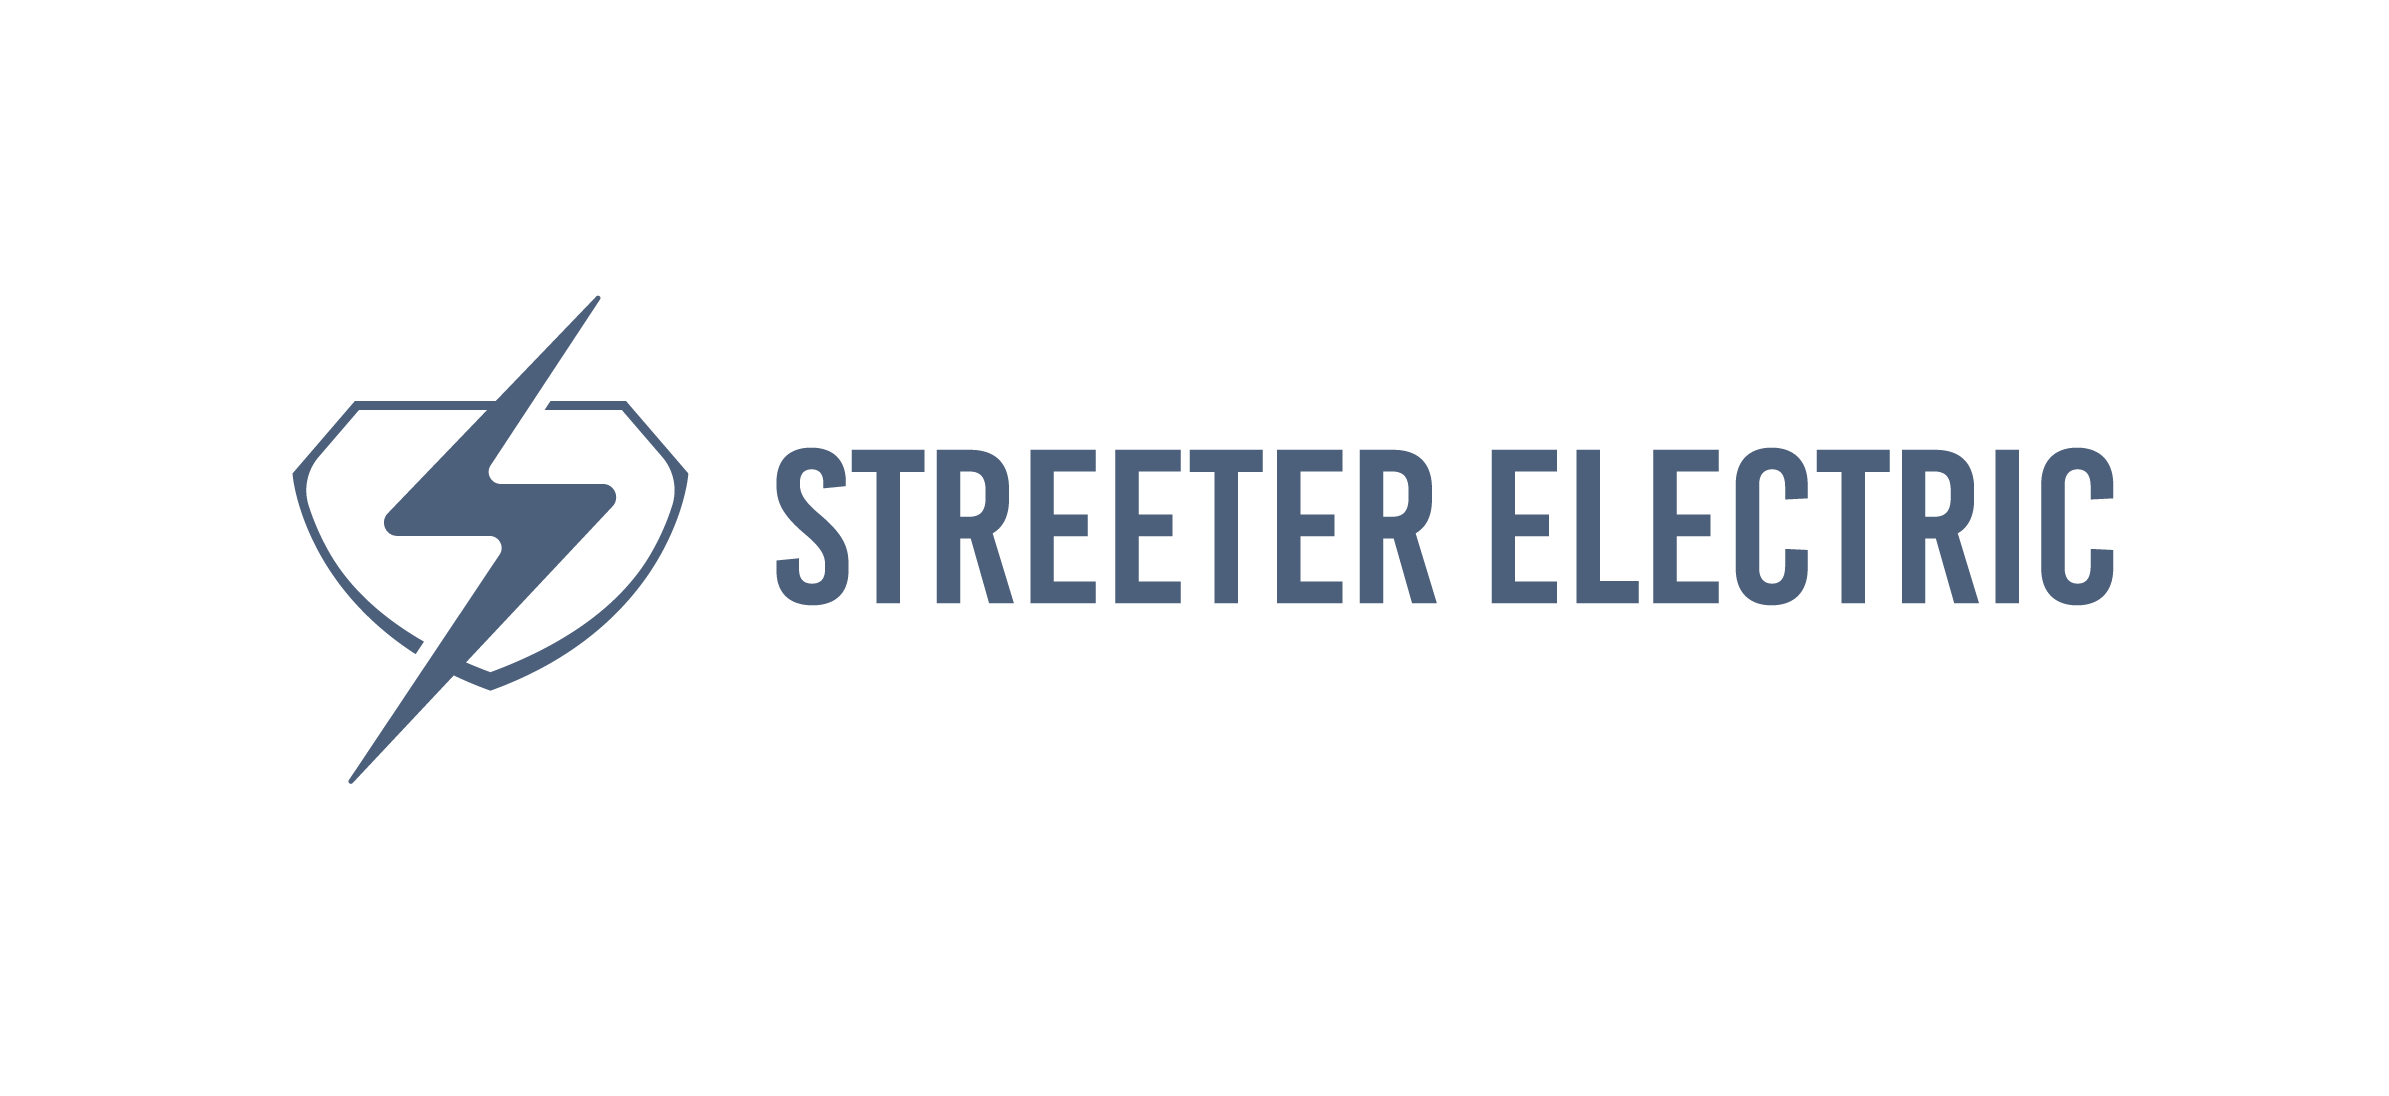 streeter electric - granbury texas